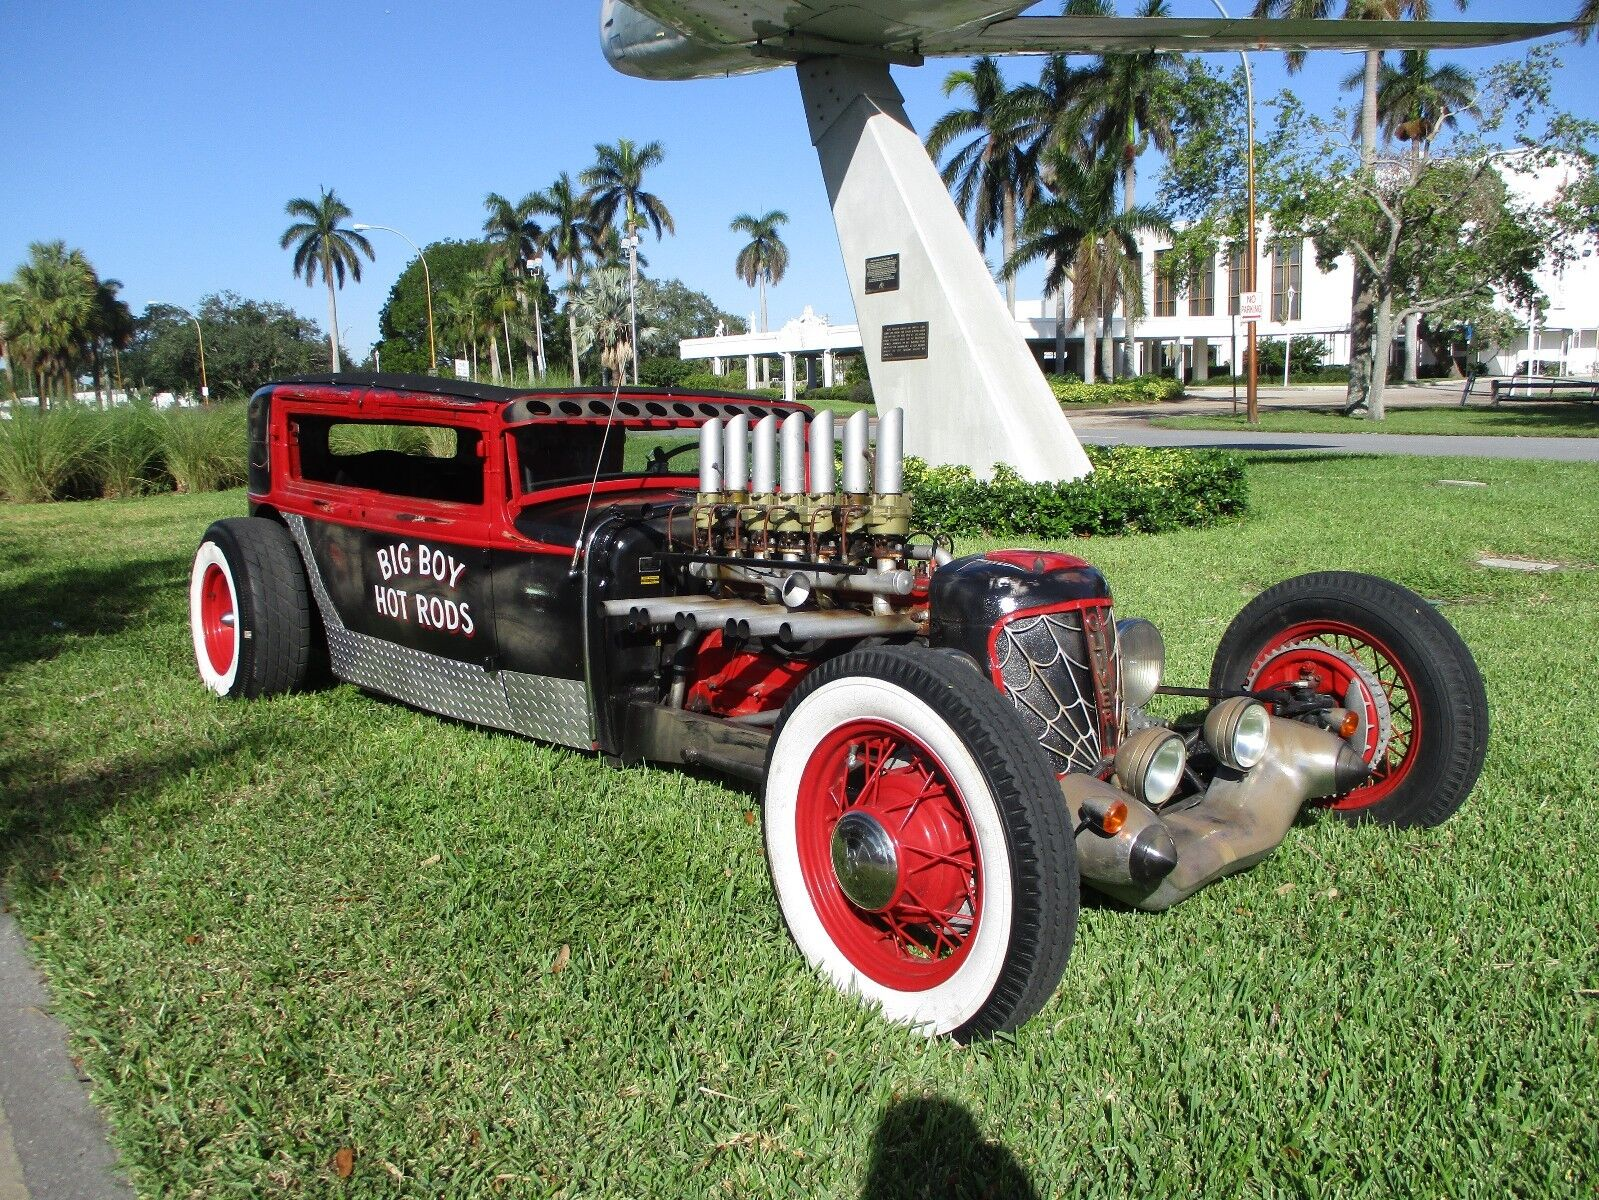 1930 Ford Model A  1930 FORD MODEL A RAT ROD OLD SCHOOL HOT ROD SLAMMED FOR SALE NO RESERVE